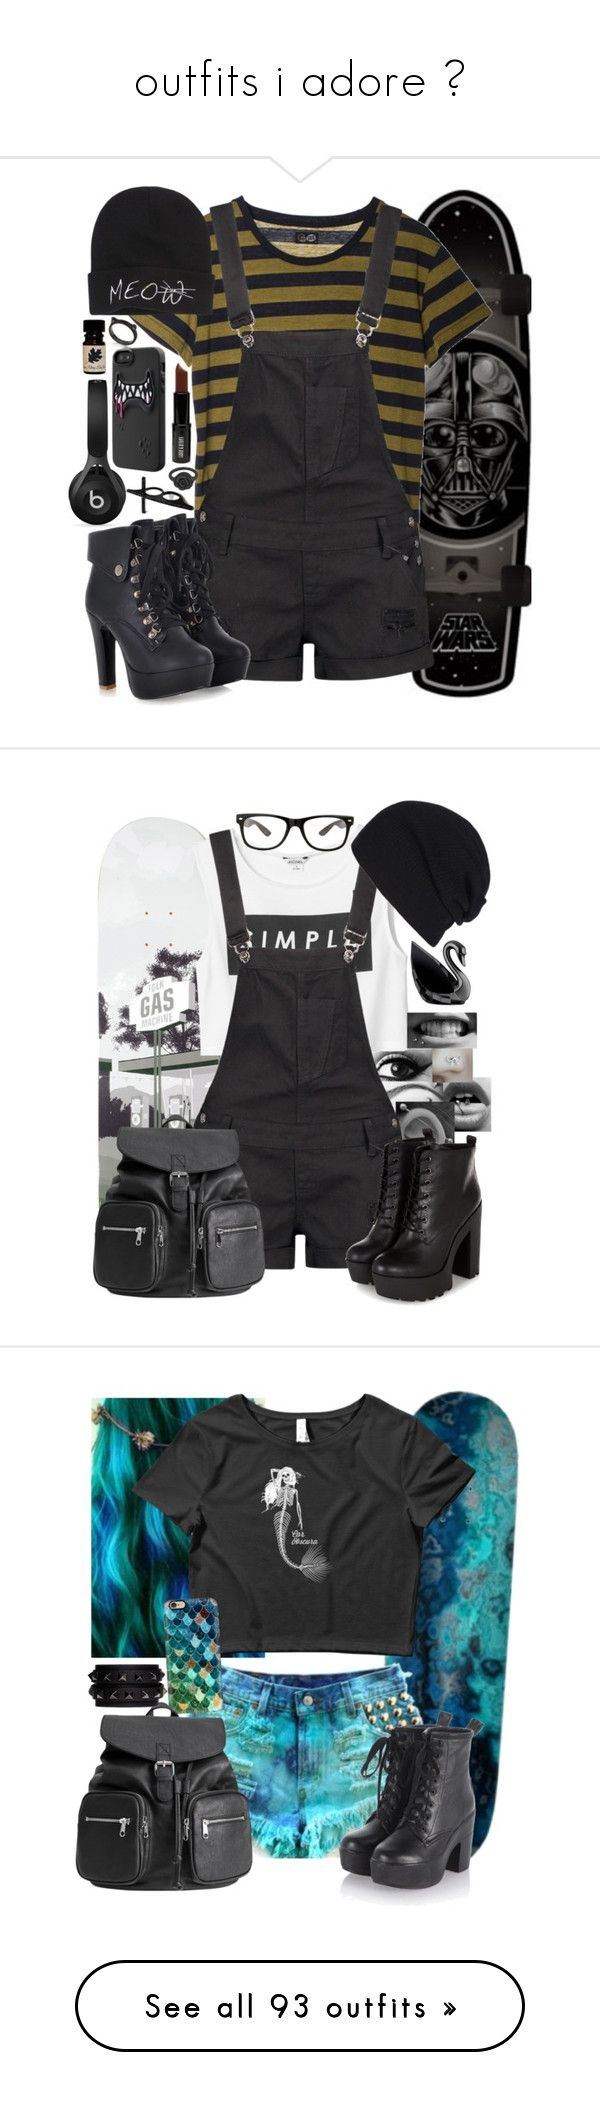 """""""outfits i adore ♡"""" by creepyaquarius ❤ liked on Polyvore featuring Kate Spade, Cheap Monday, Boohoo, LA: Hearts, Beats by Dr. Dre, Lord & Berry, LeiVanKash, GAS Jeans, Monki and H&M"""